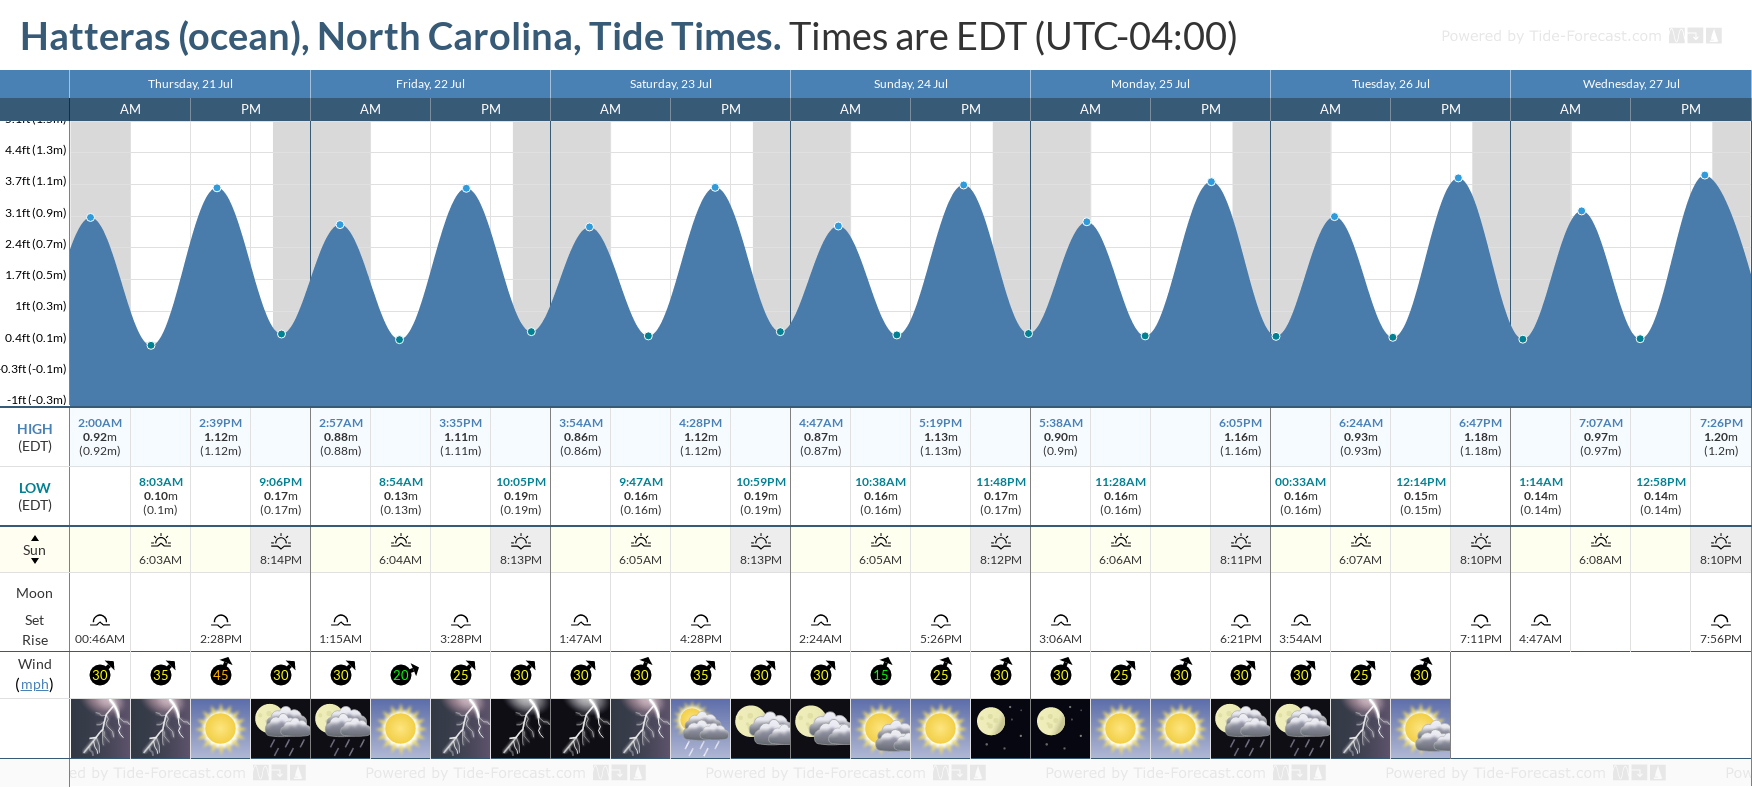 Hatteras (ocean), North Carolina Tide Chart including high and low tide tide times for the next 7 days